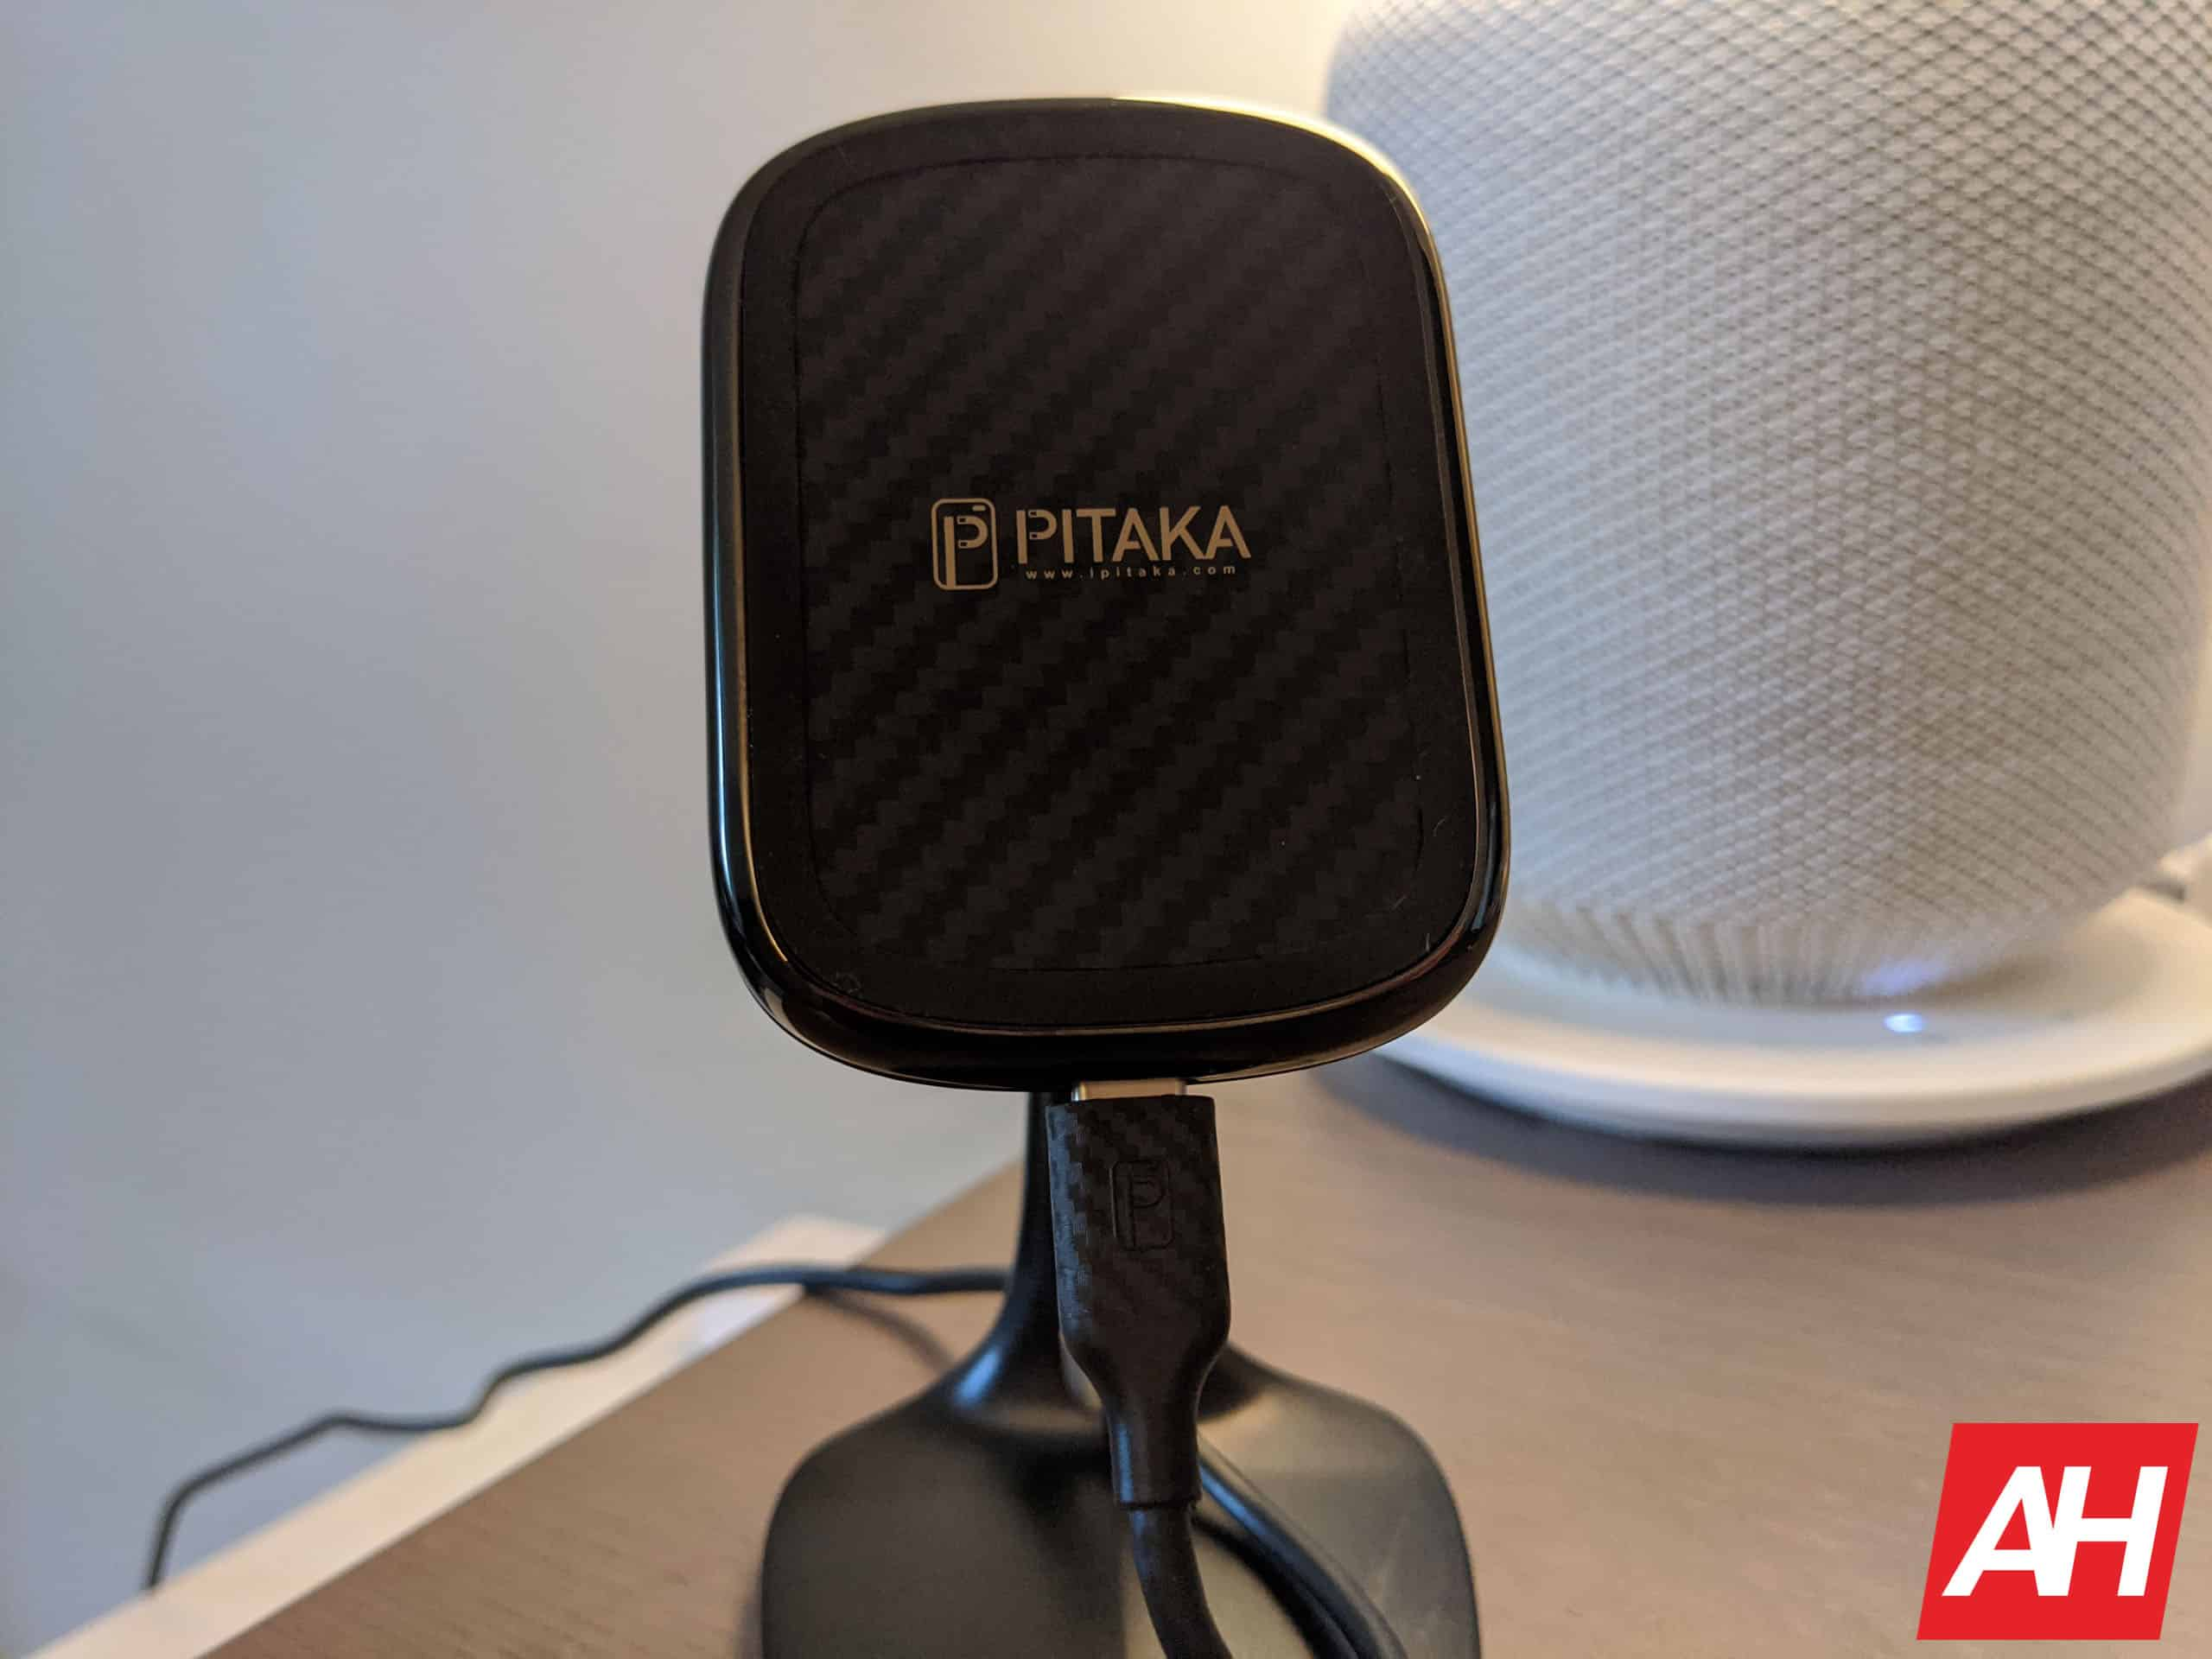 Pitaka wireless charger review AM AH 1